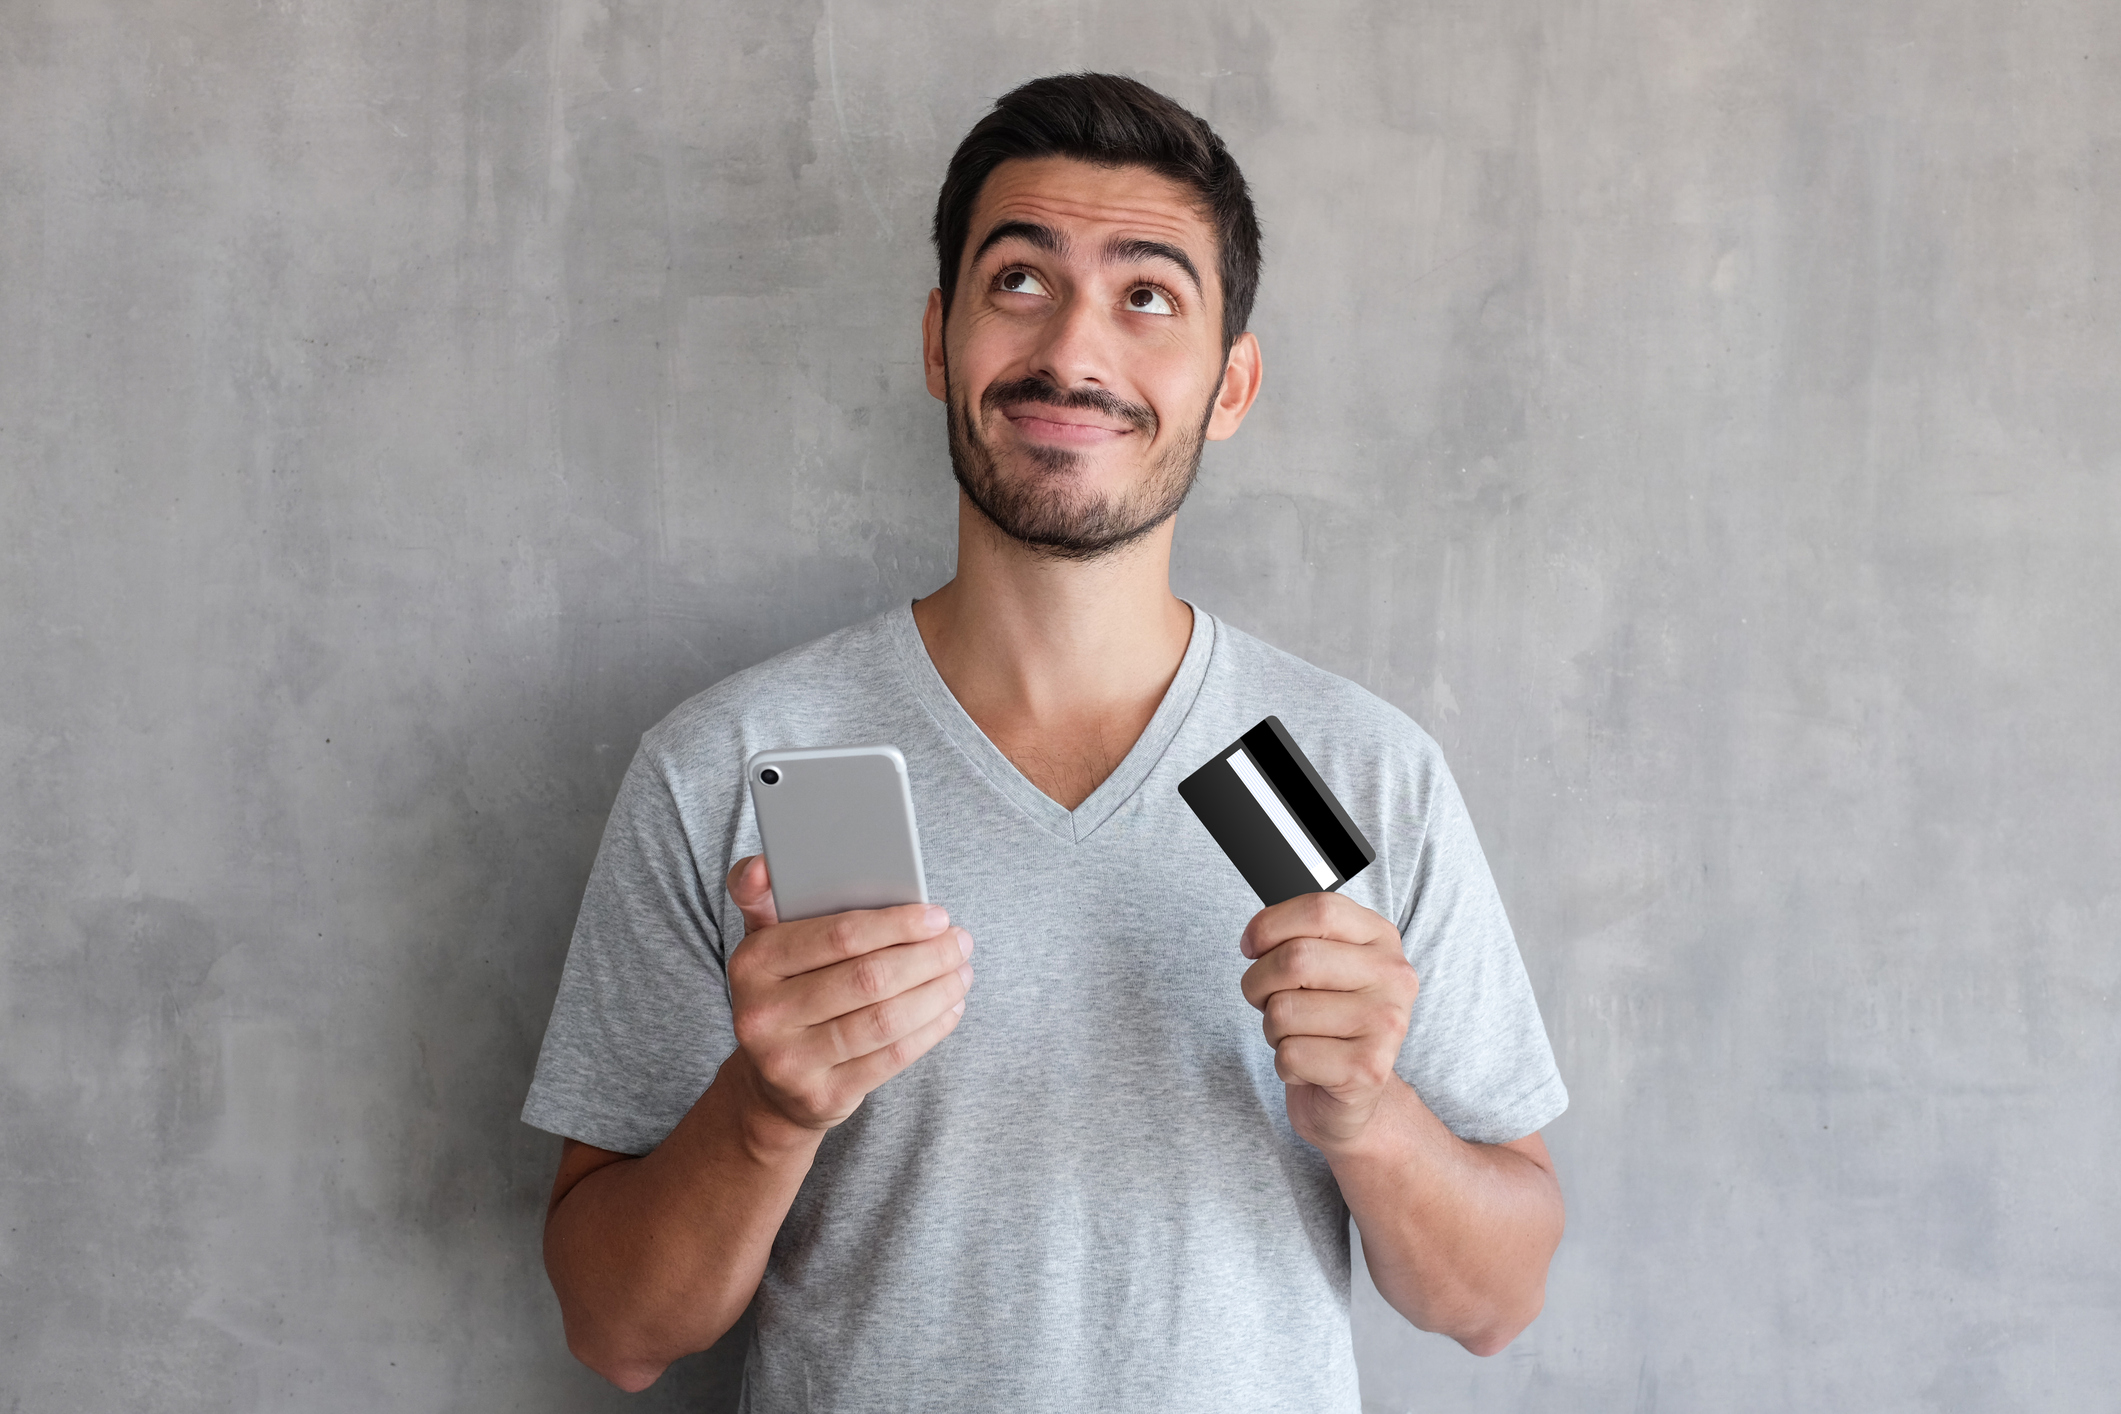 Man with credit card and cell phone